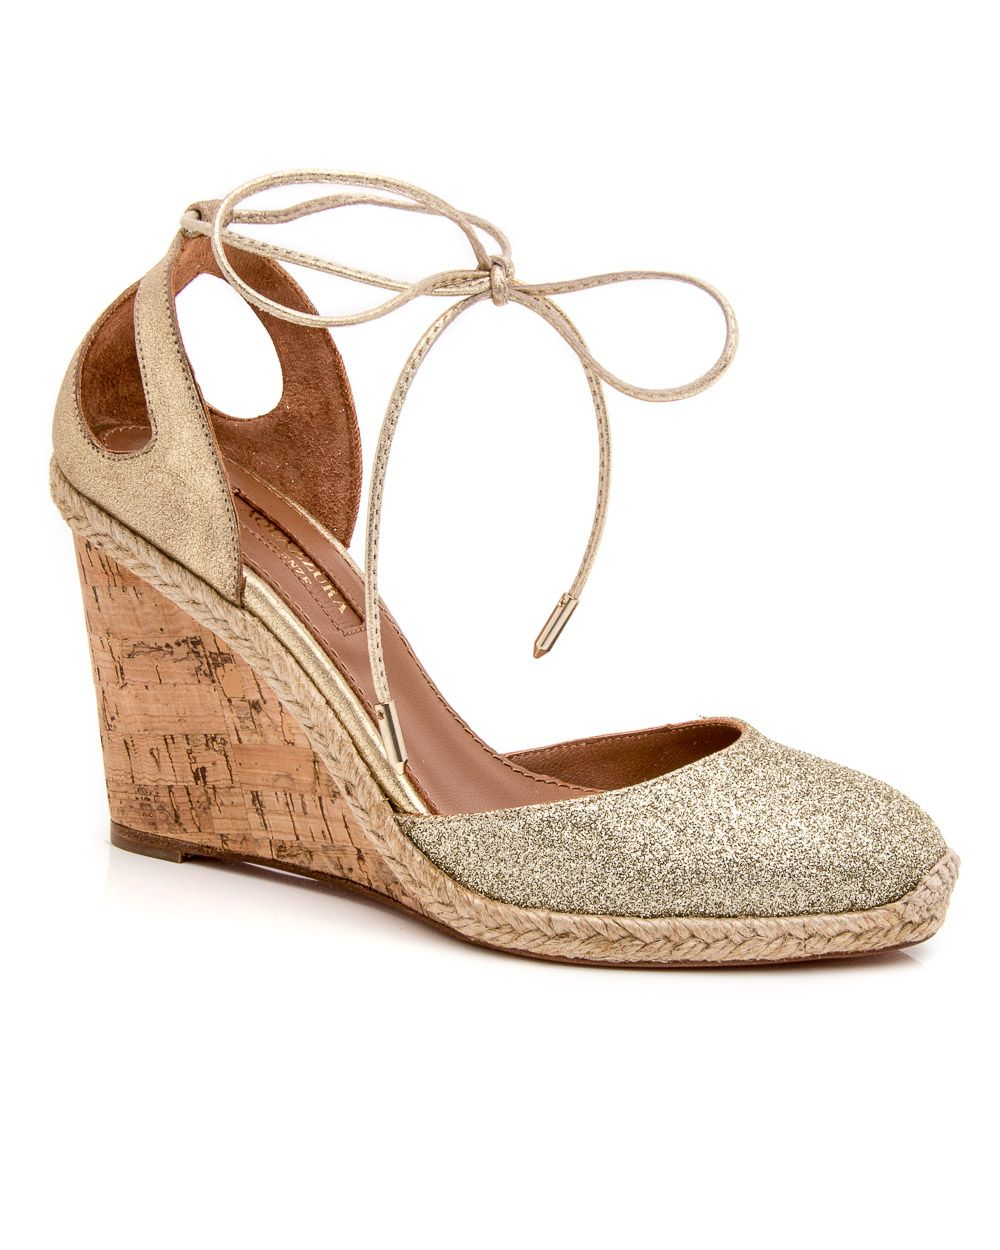 Aquazzura Metallic Glitter Wedges